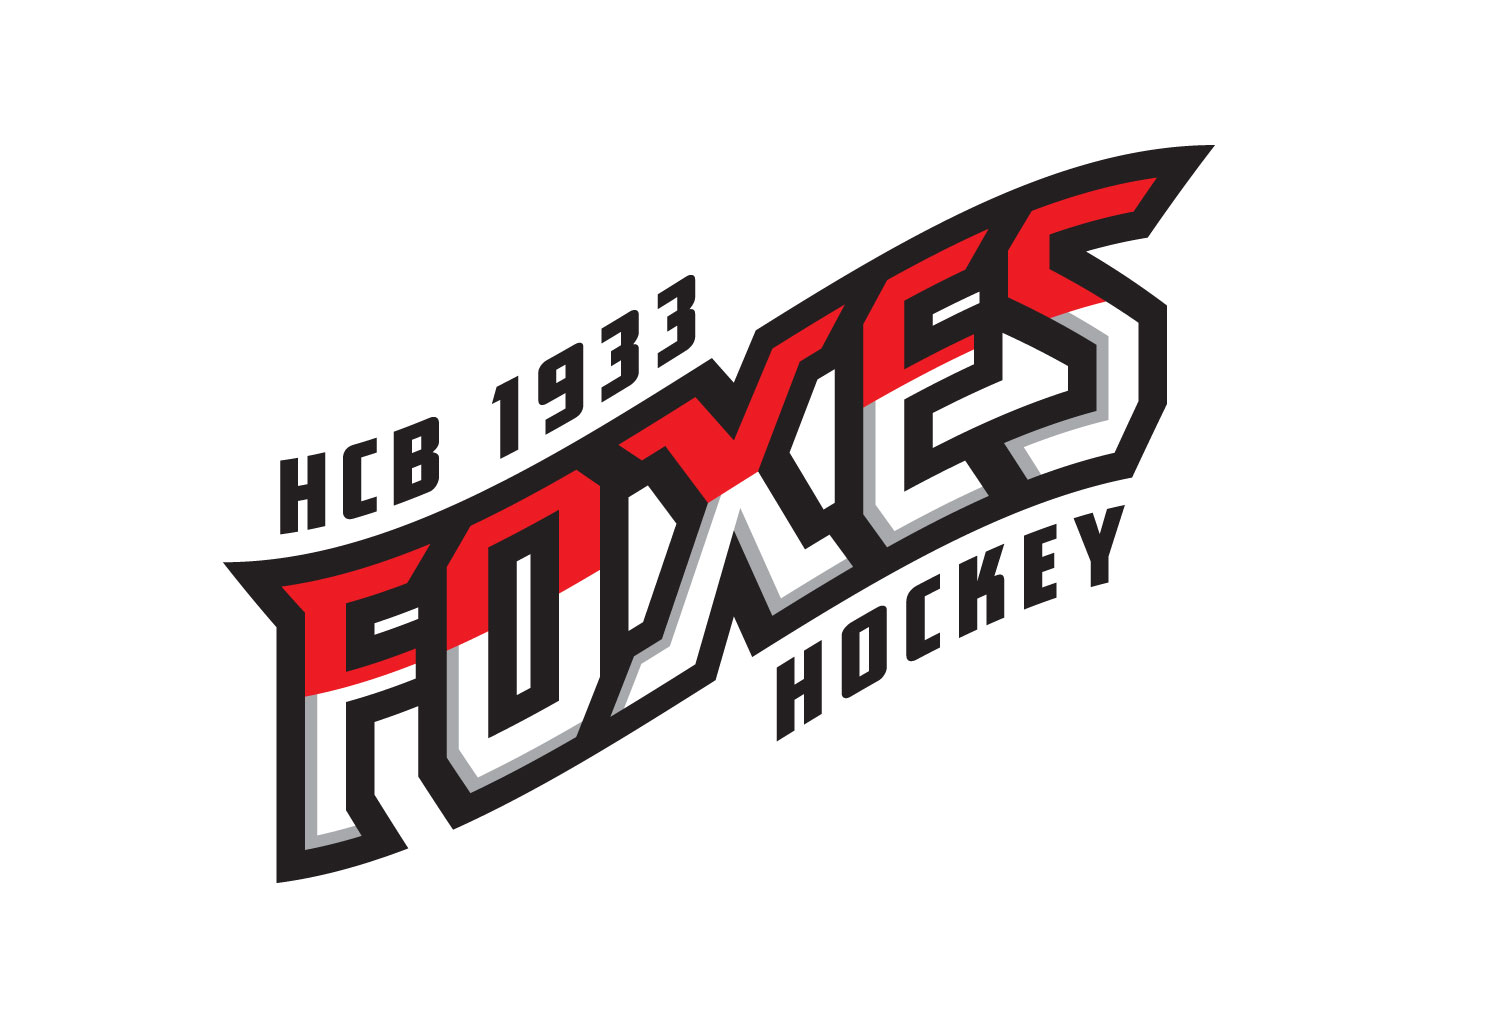 HCB_Foxes_Logo-No-Text-Wordmark-Adjusted.jpg